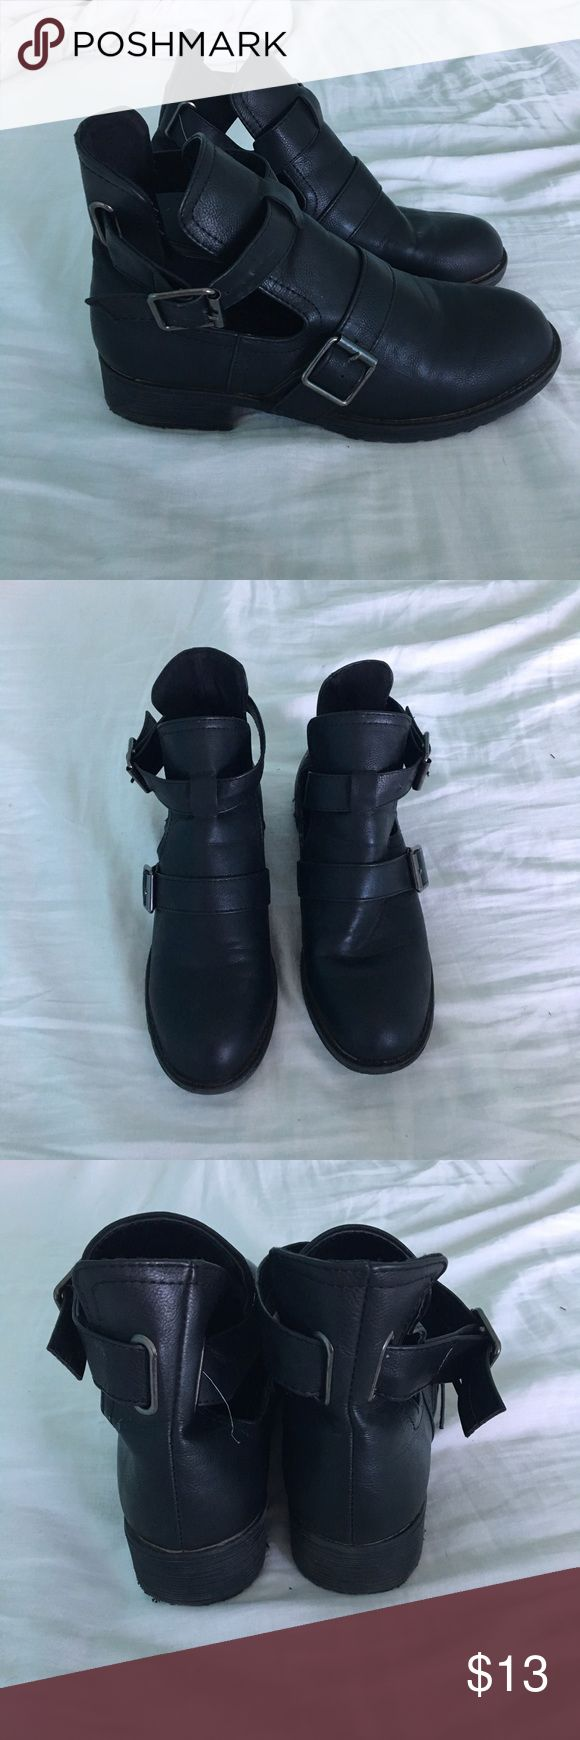 Black booties Super cute boots! Says size medium on the bottom of the shoe, which is anywhere from 7.5-9. I wear a 7 and they were a little too big. Adjustable buckle detailing, great condition. Very versatile. (Tumblr, hipster, aesthetic, minimalist, edgy, badass, grunge, 90's, 90s, vintage, love, fashion, style) Rue 21 Shoes Ankle Boots & Booties